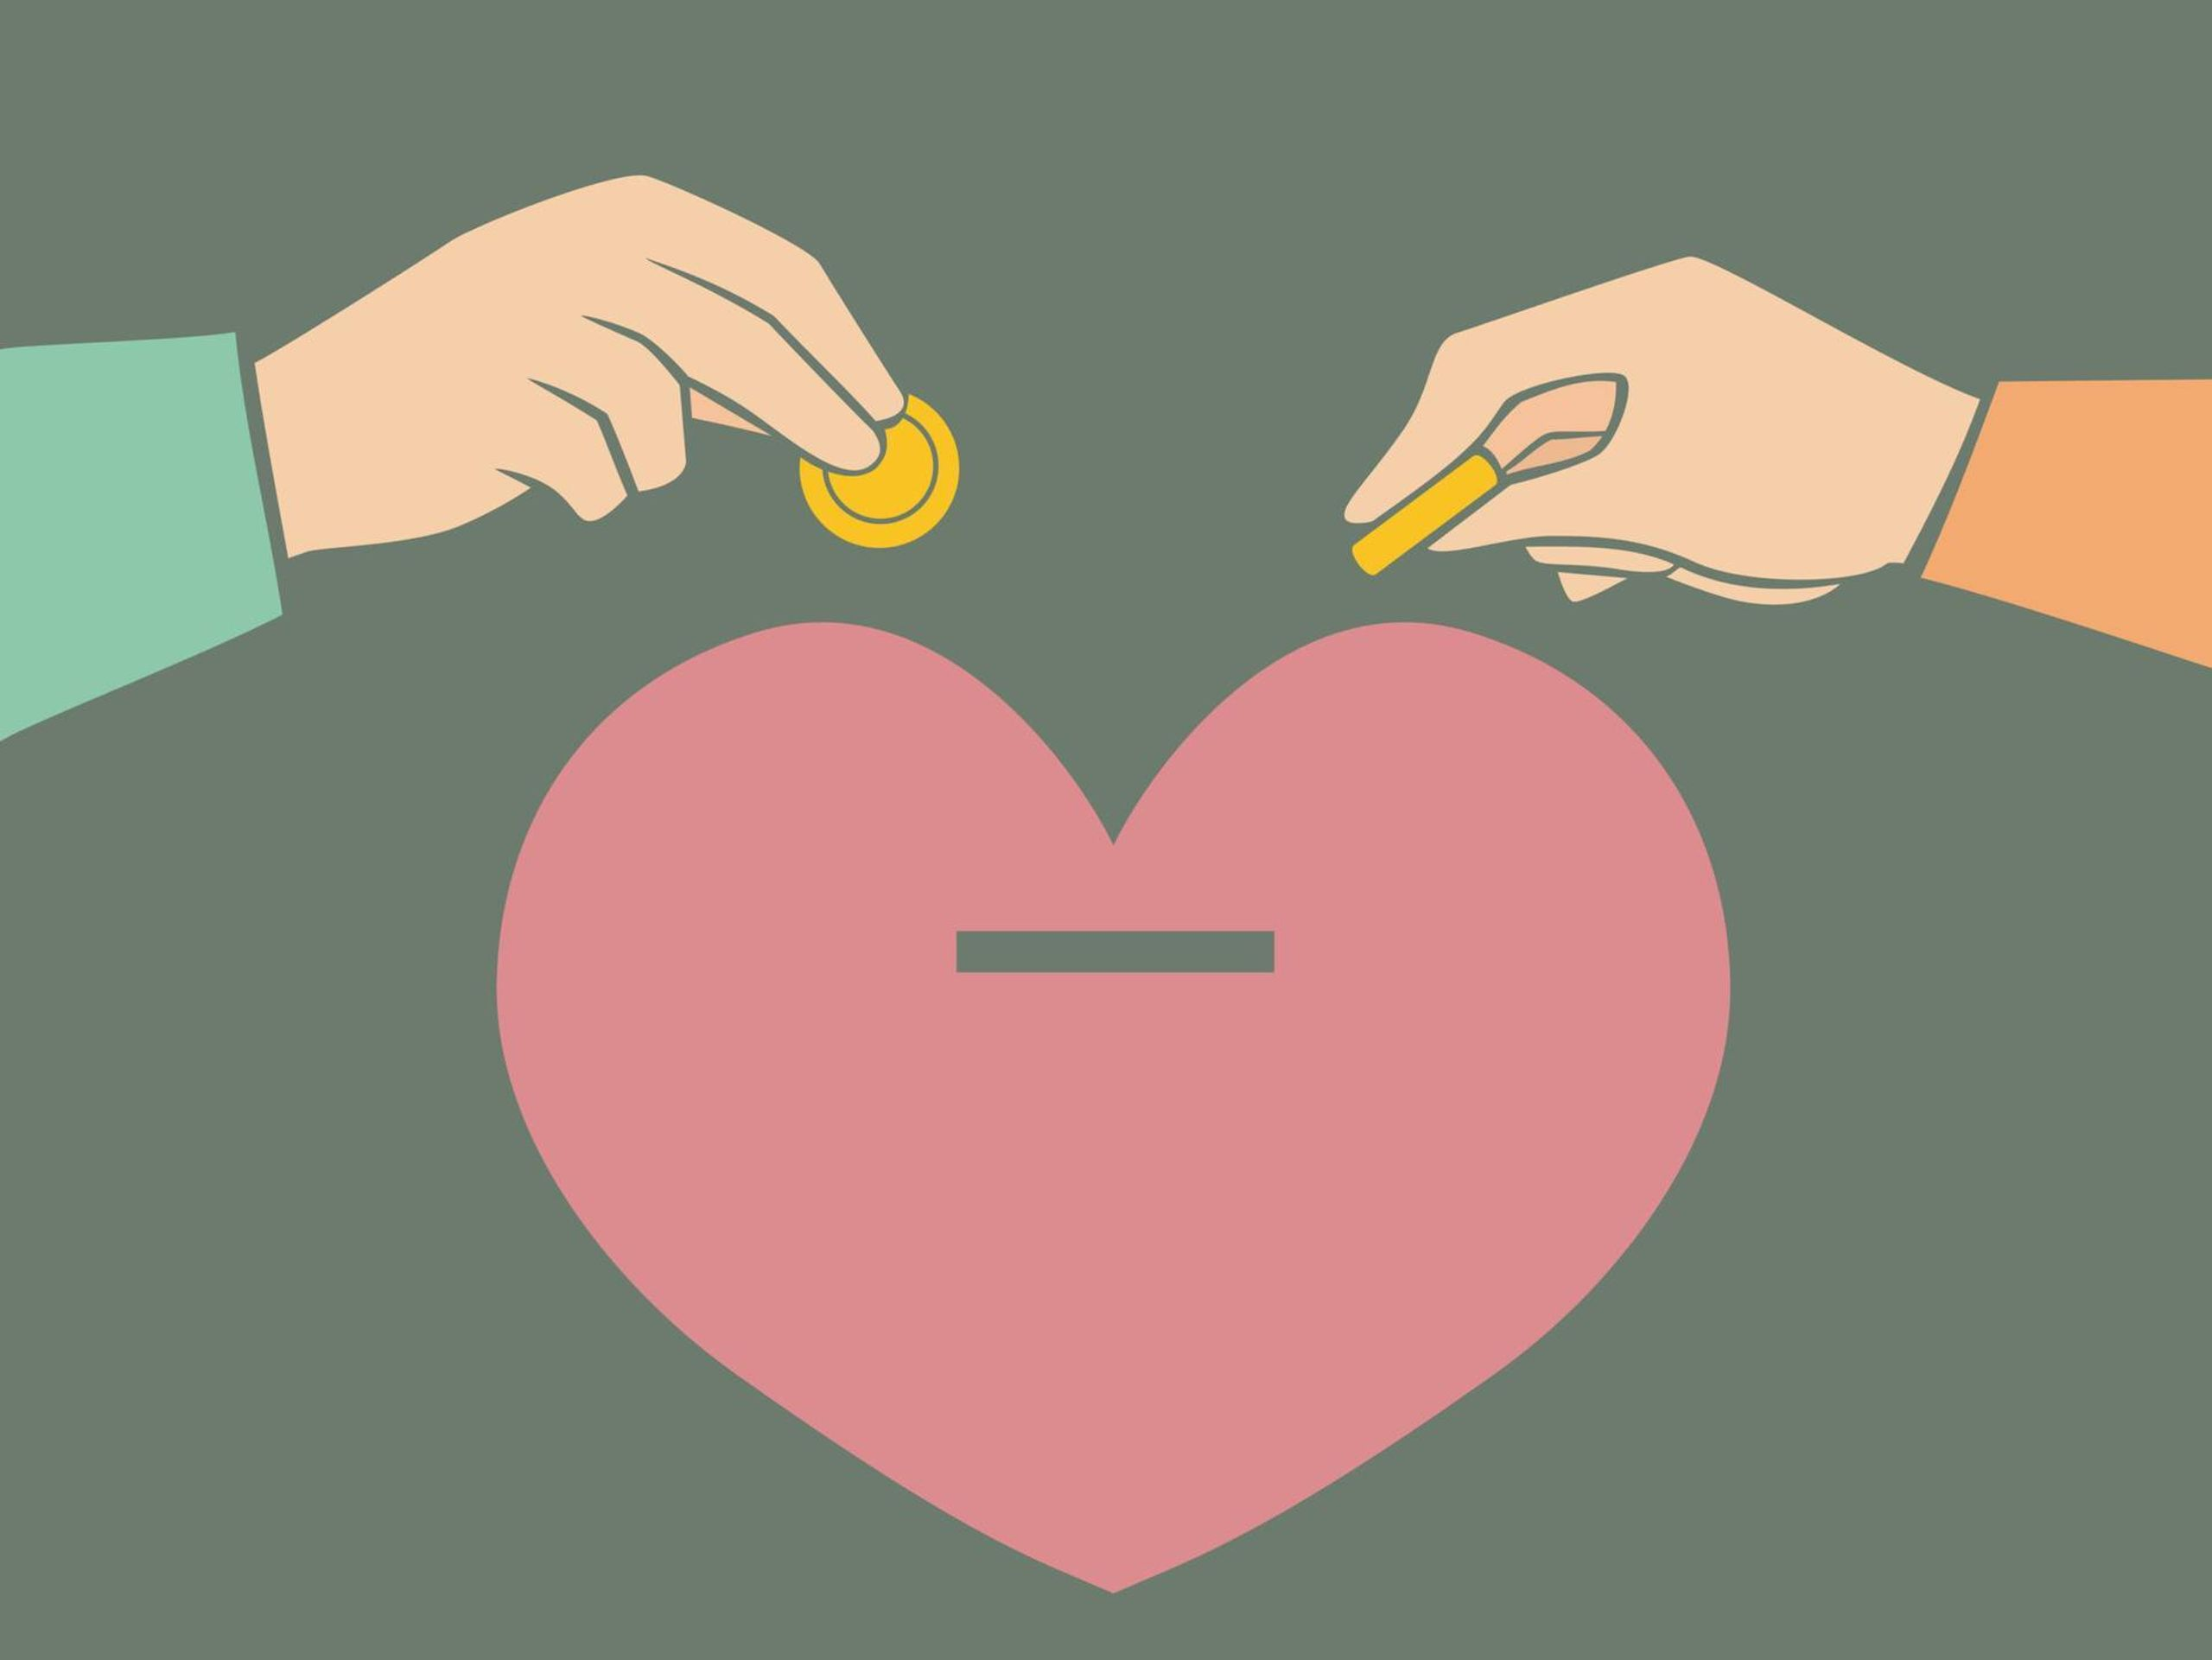 Illustration of Two Hands of Couple inserting coins into Heart-shaped Bank, combine finances, rewire